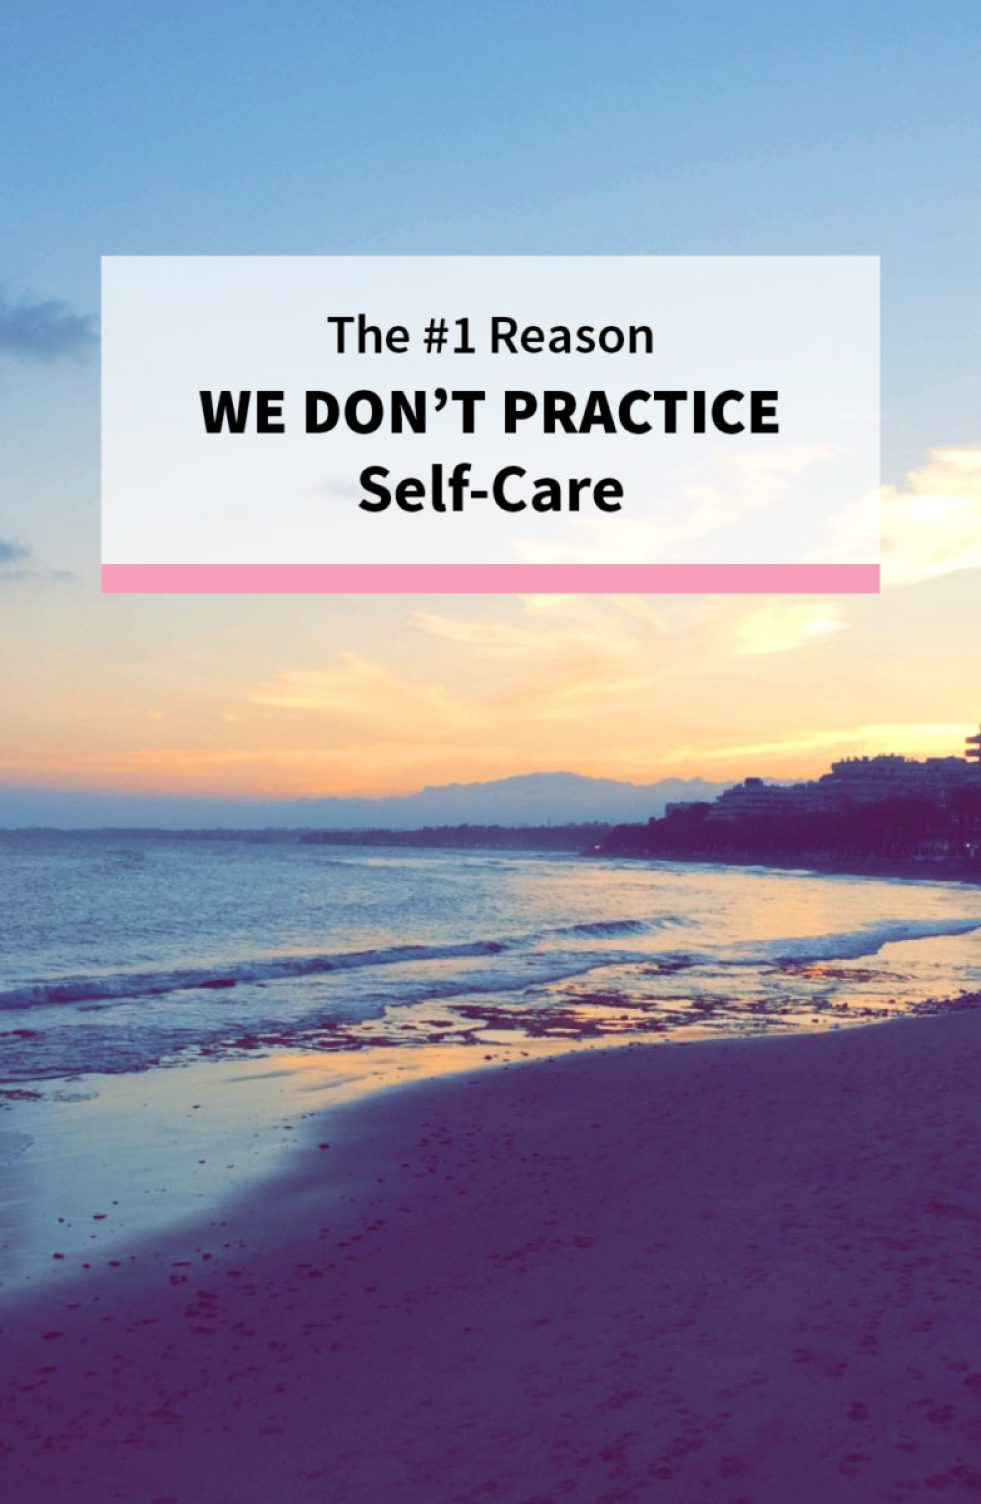 The #1 Reason We Don't Practice Self-Care